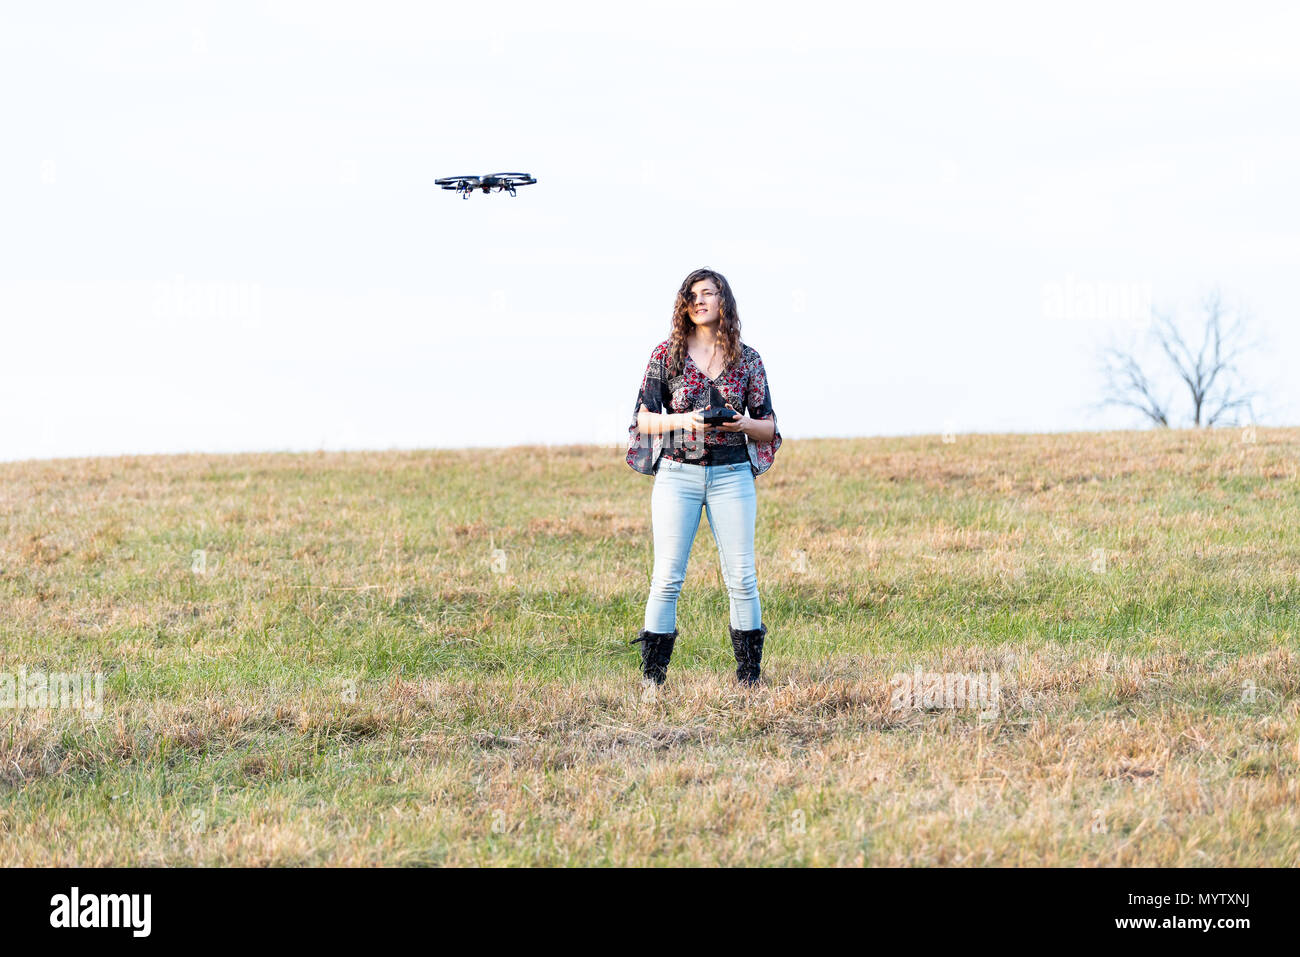 Young happy smiling woman controlling video camera drone in autumn or fall with boots in park in Virginia countryside open field hill - Stock Image